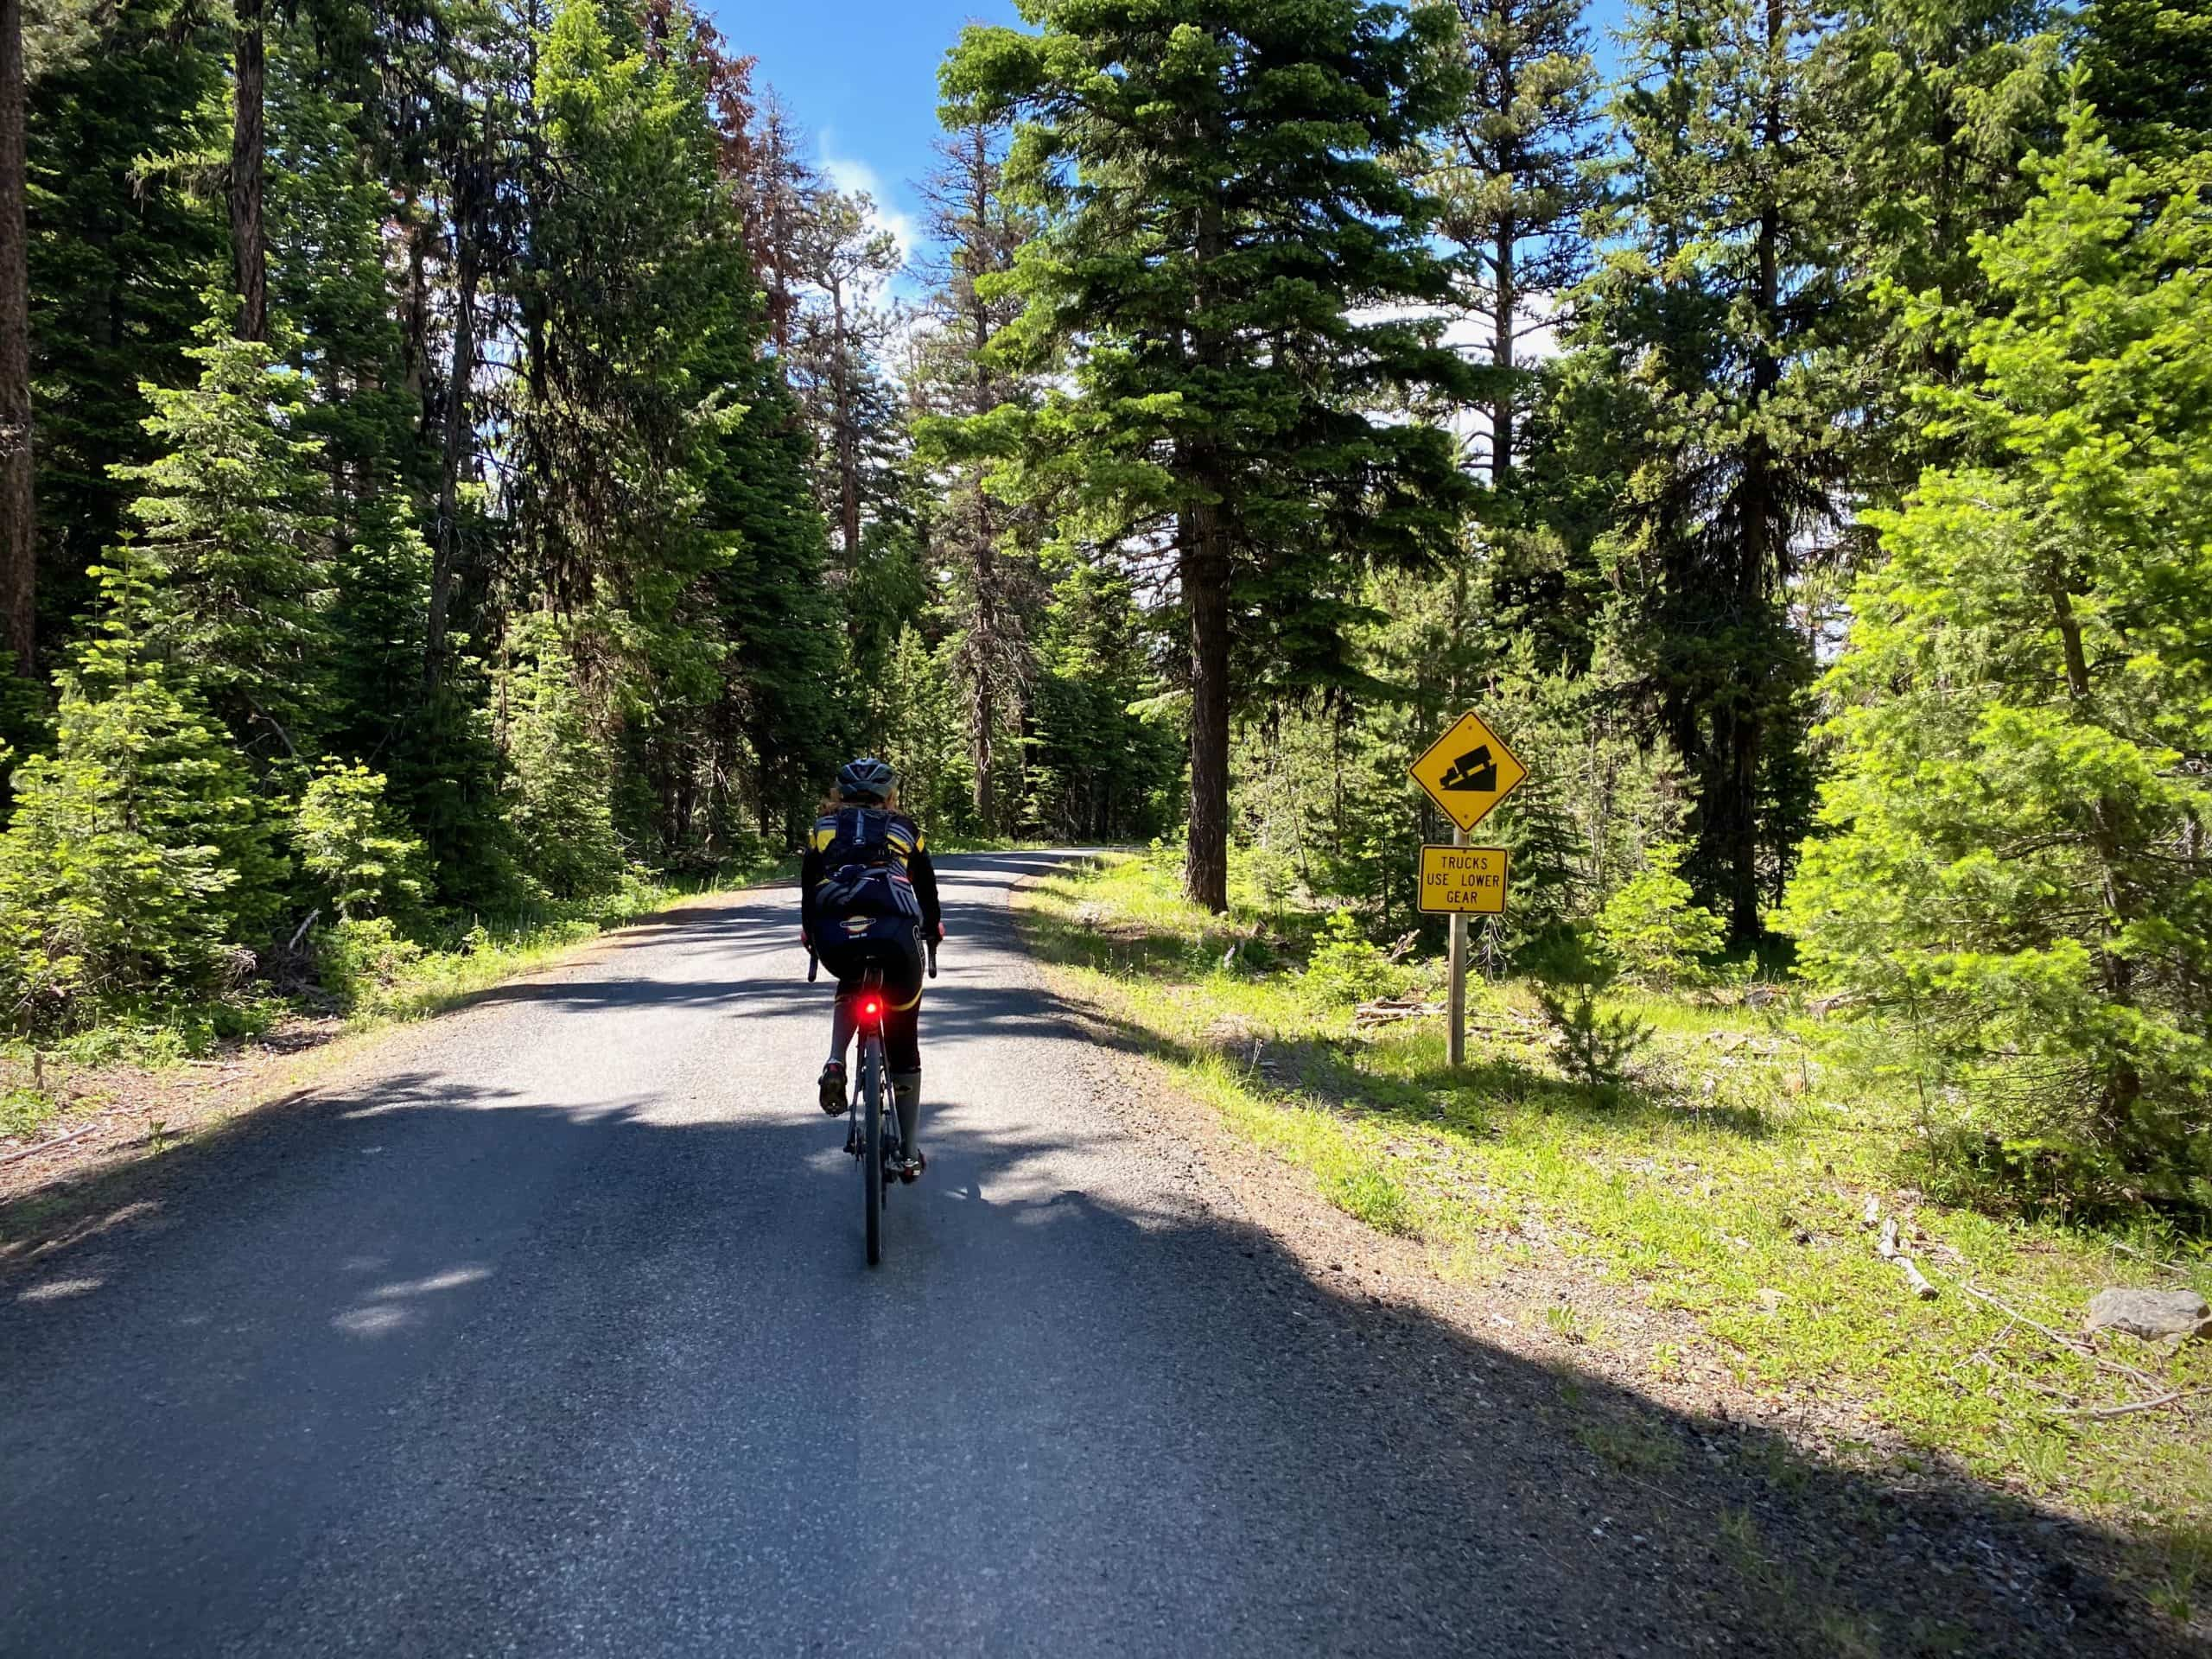 Cyclist getting ready to descent NF 12, Buck Point road, in the Ochoco Mountains.